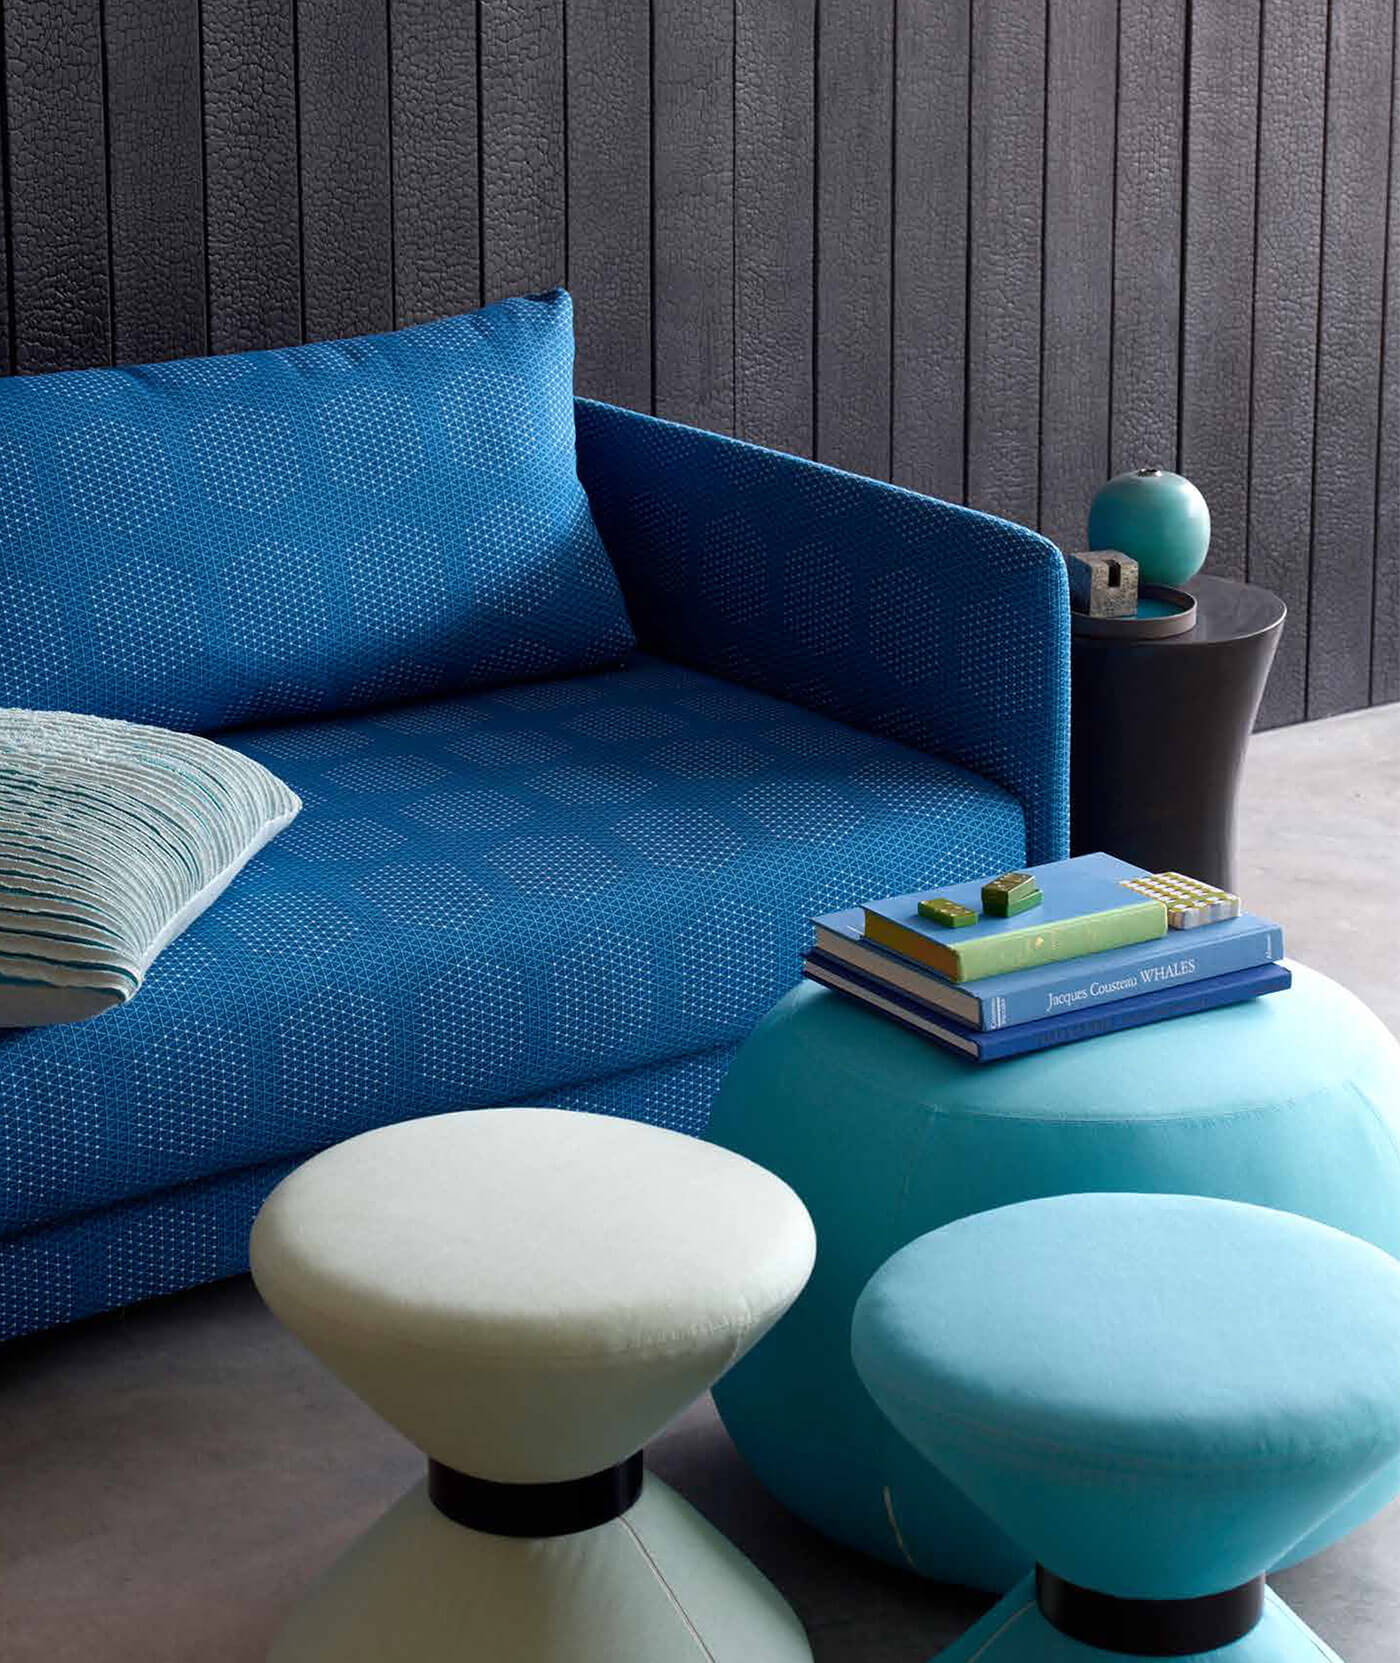 A blue sofa covered in Dot Structure Sunbrella Contract fabric with coordinating teal and white pouffs